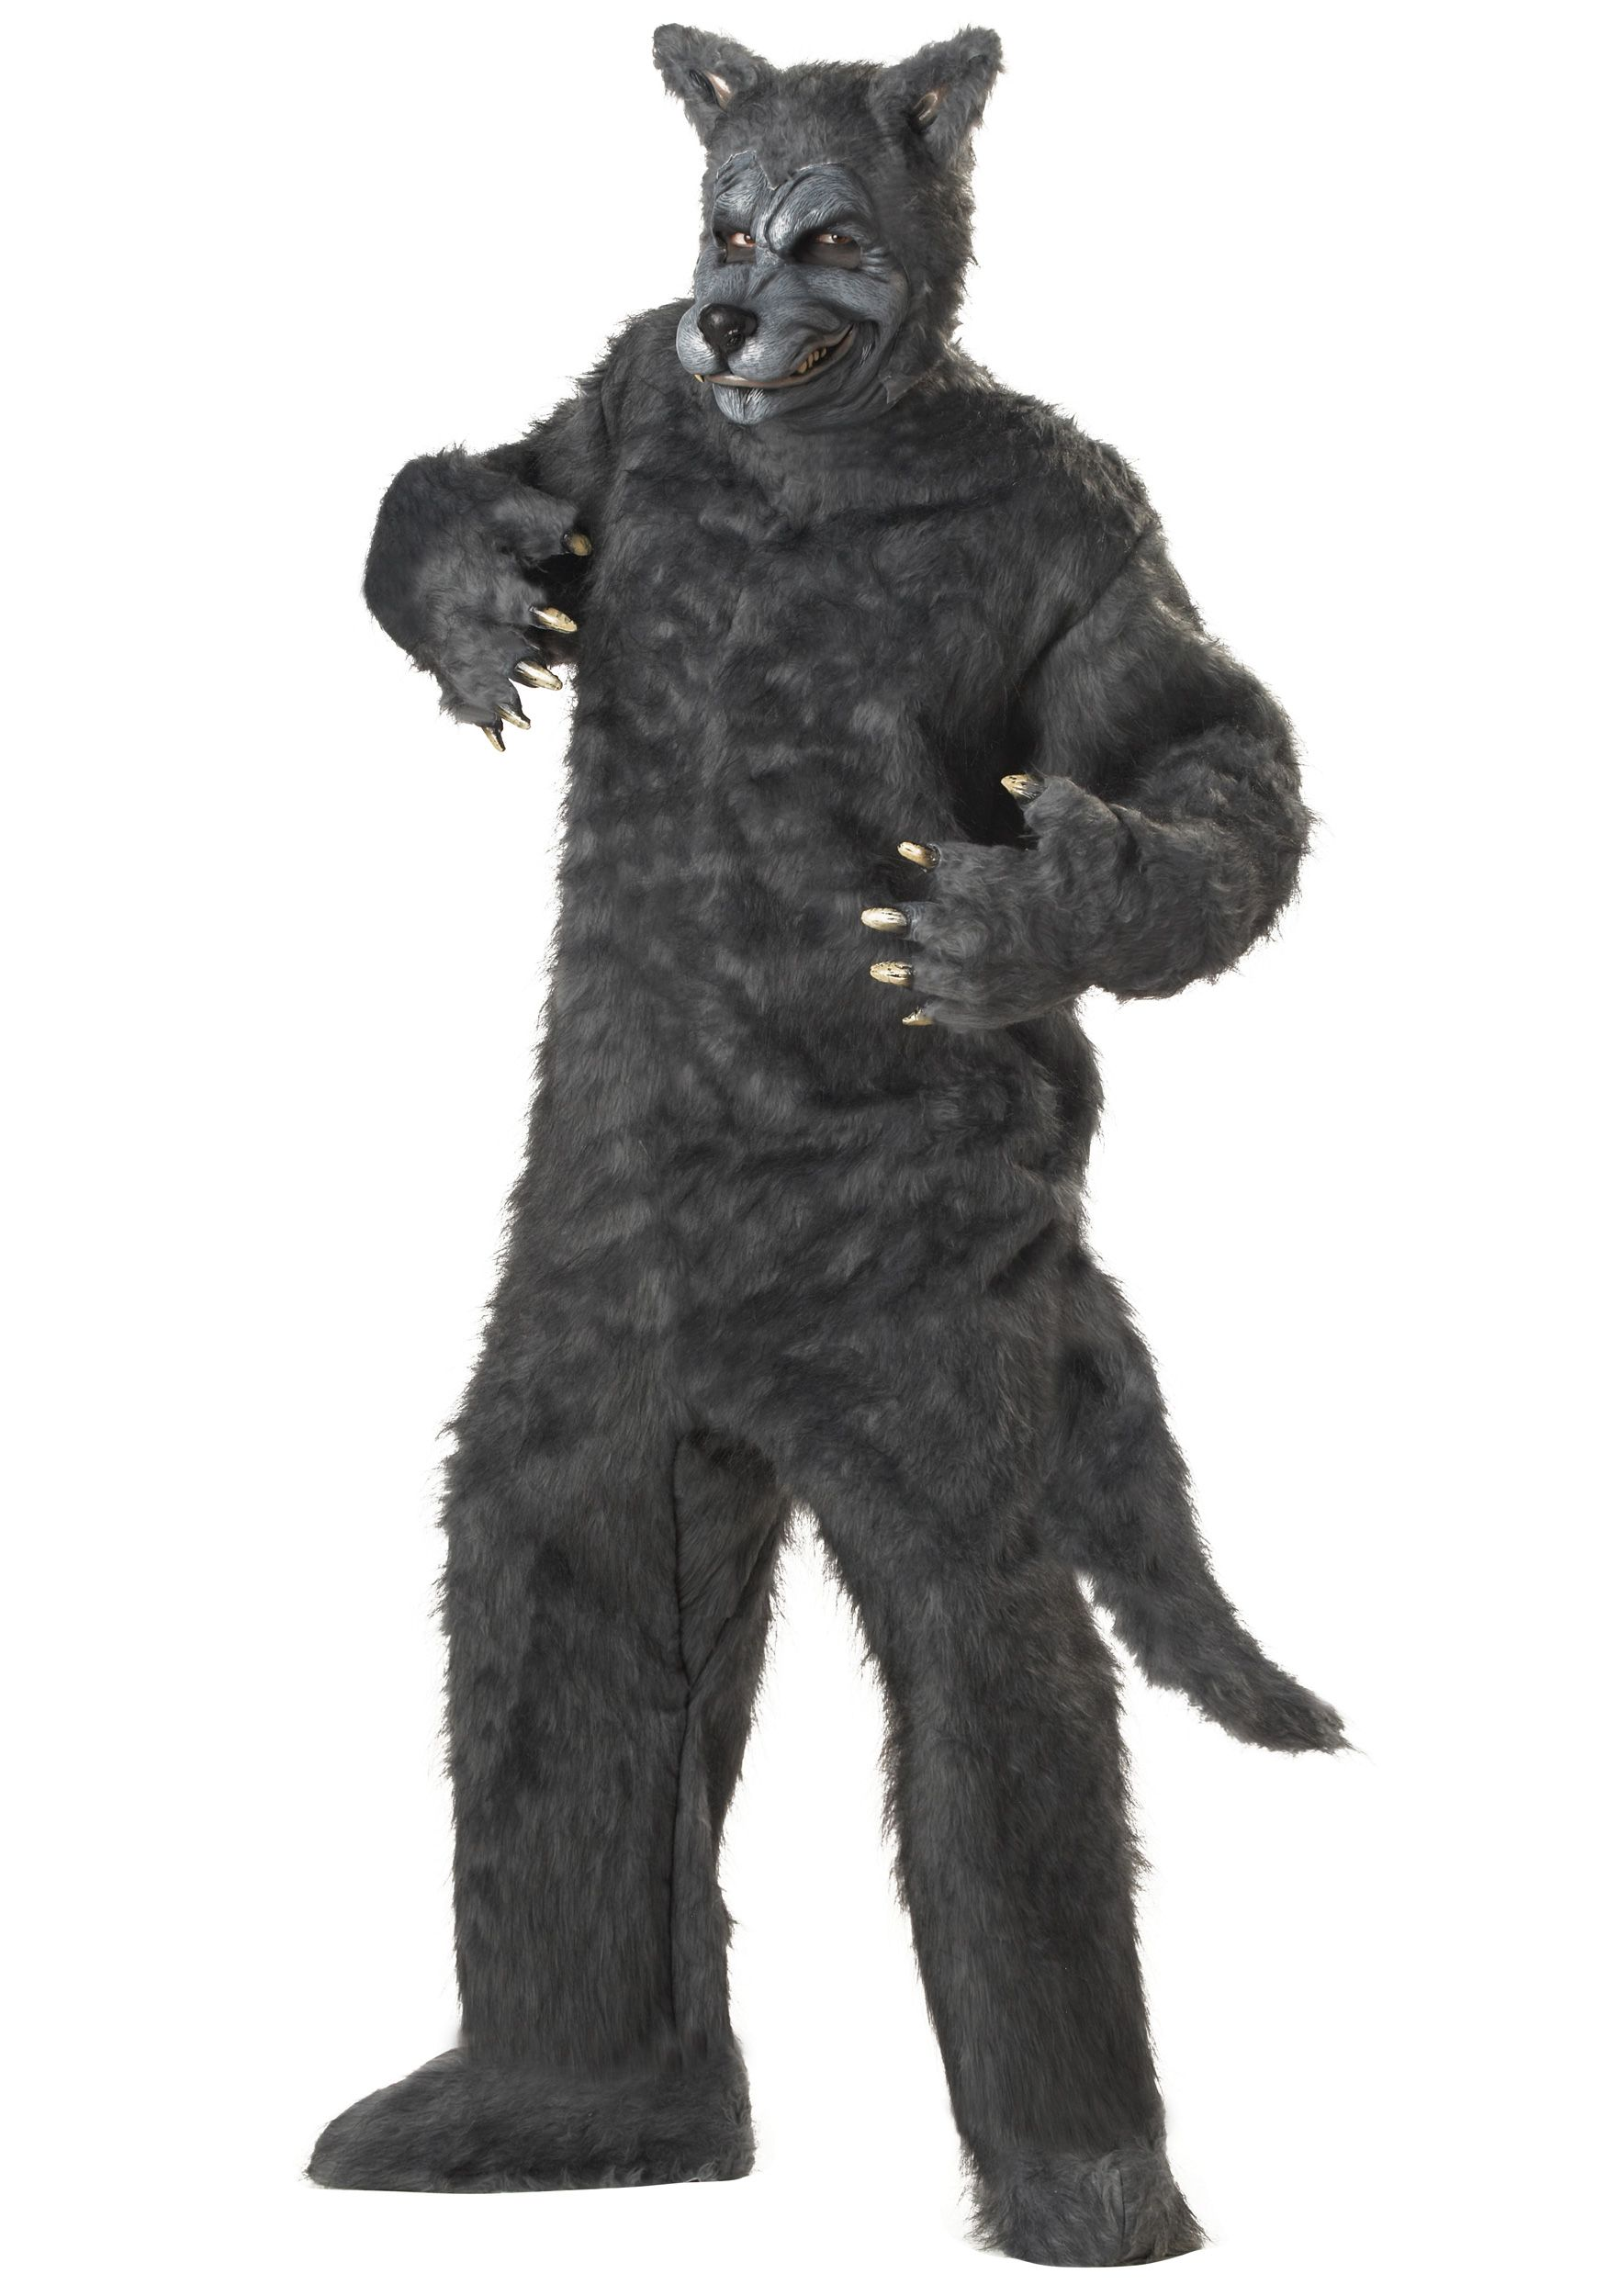 Adult Big Bad Wolf Costume | Big bad wolf costume, Wolf costume ...